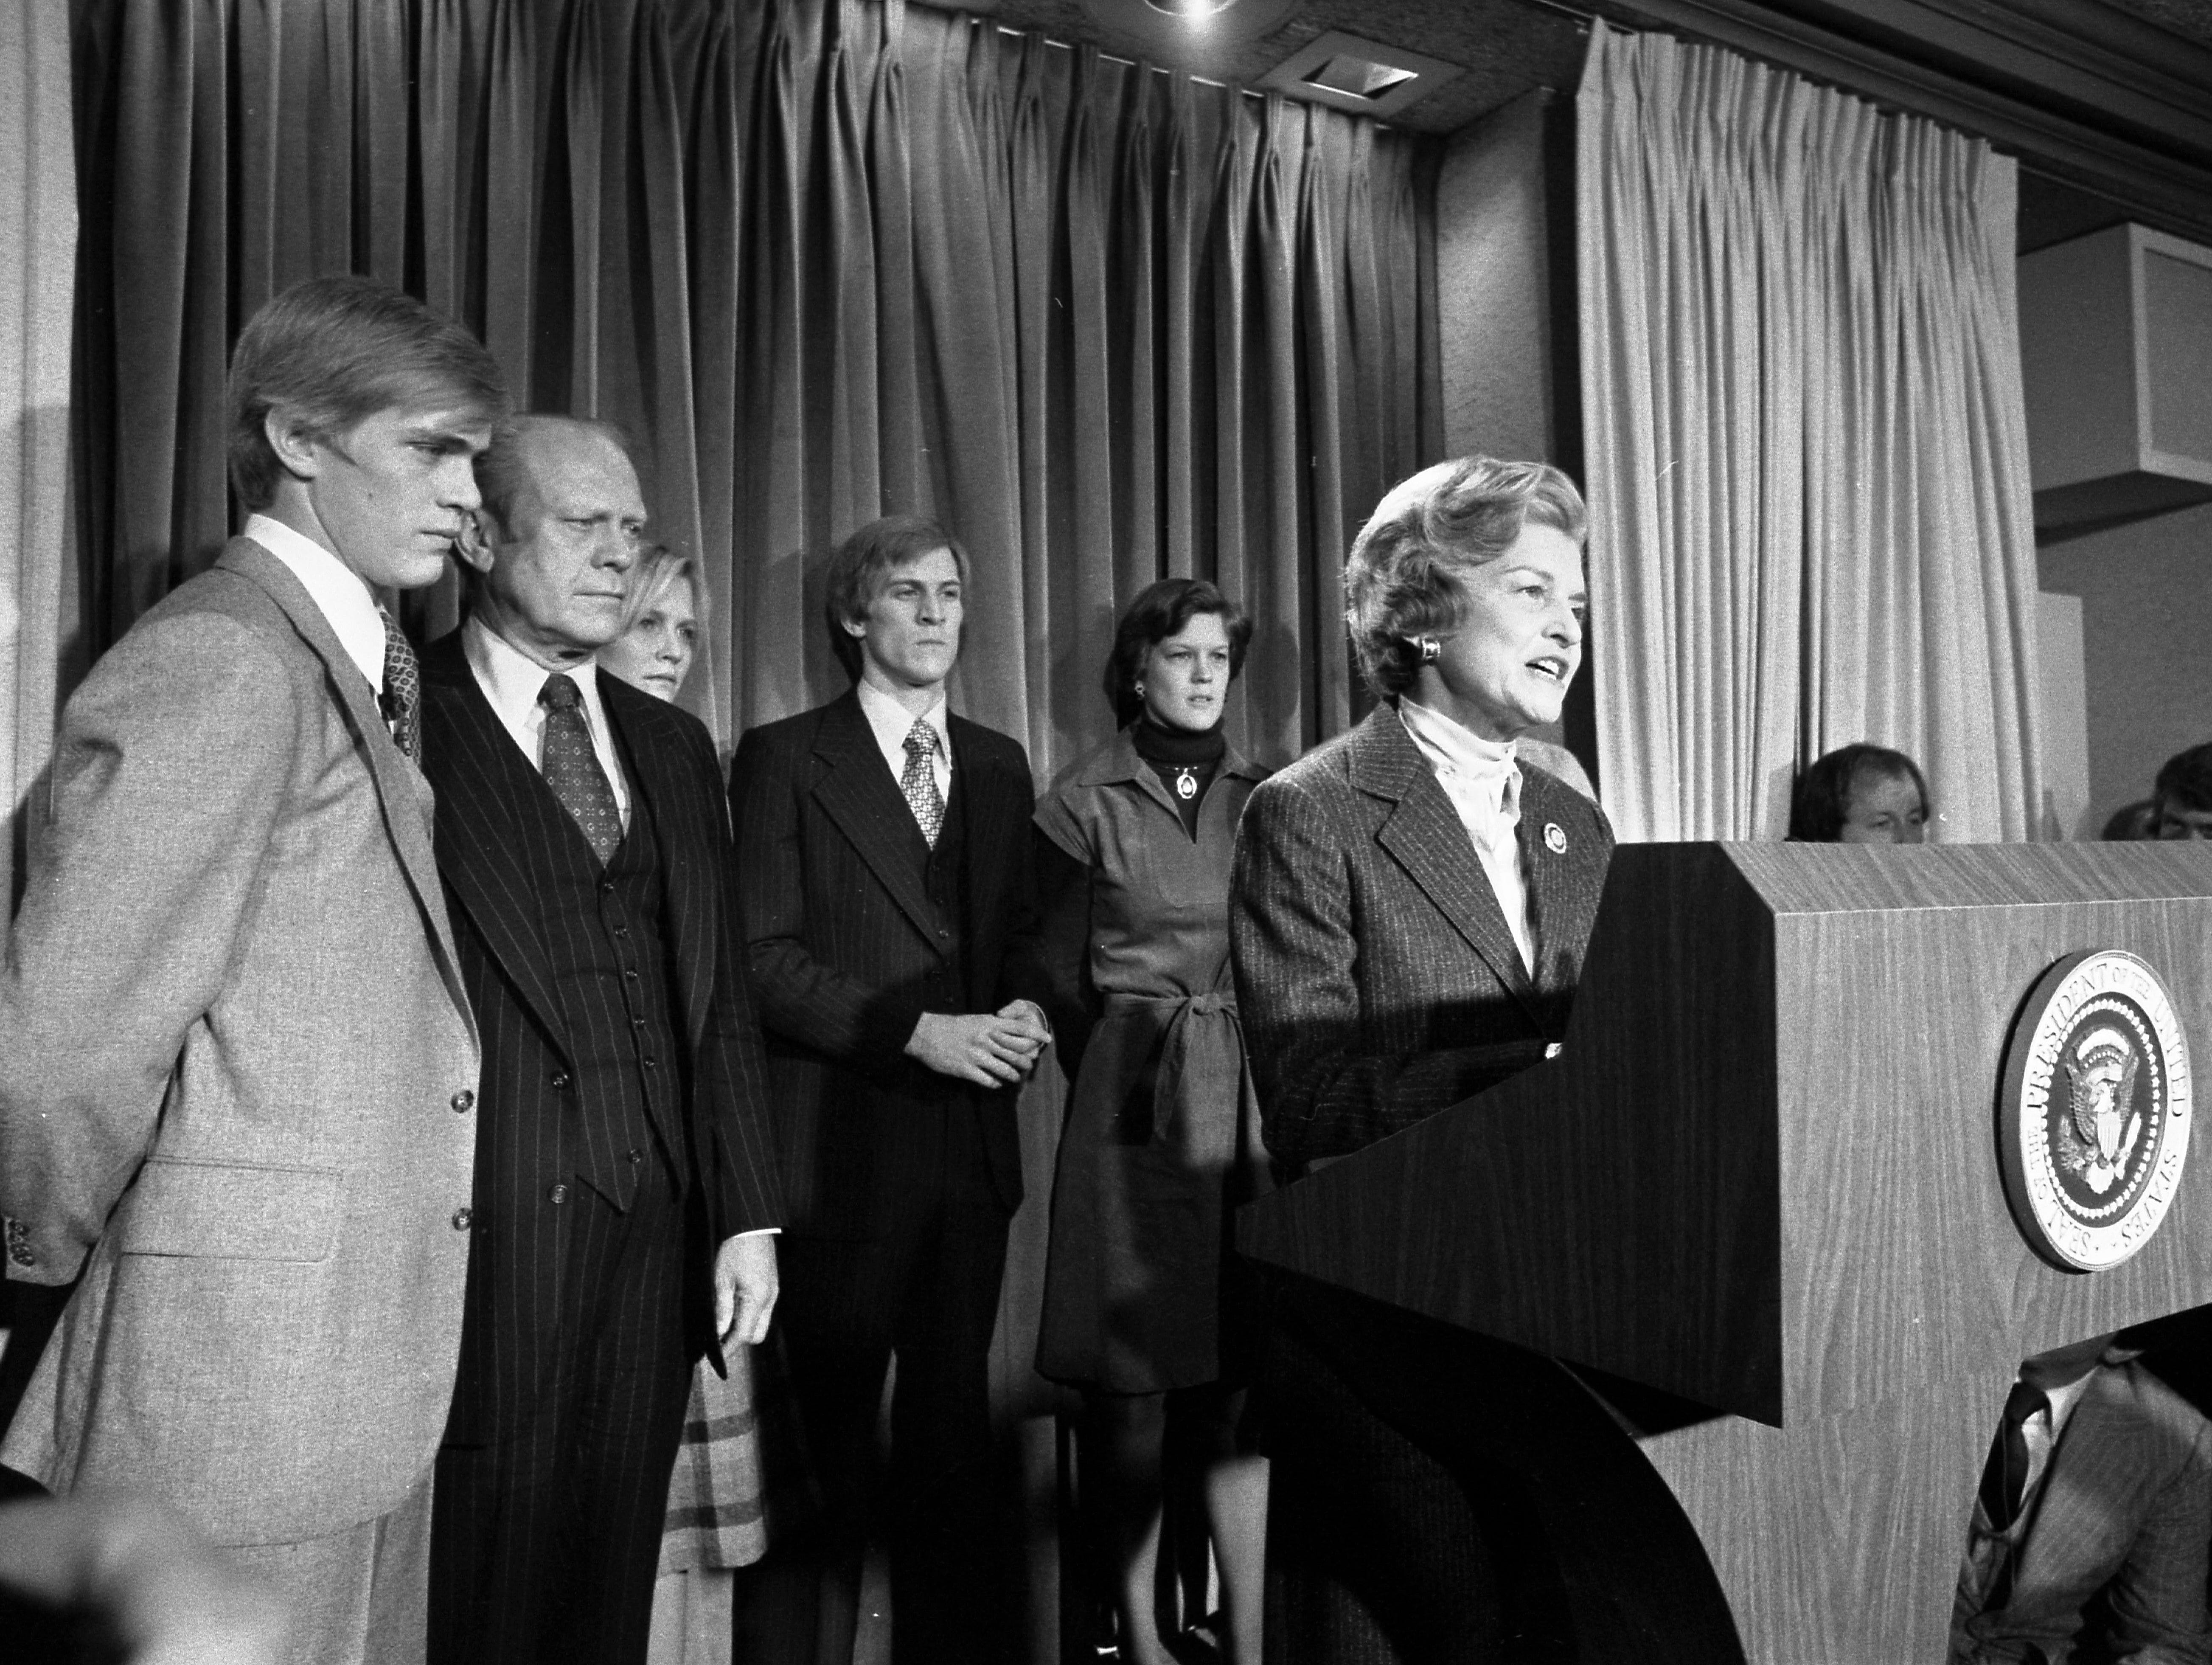 Because President Ford lost his voice in the waning hours of the 1976 presidential campaign, Betty stepped up to read his concession speech to the press. From left, Steve Ford, President Ford, Susan Ford, Mike and Gayle Ford, Betty Ford (at podium).